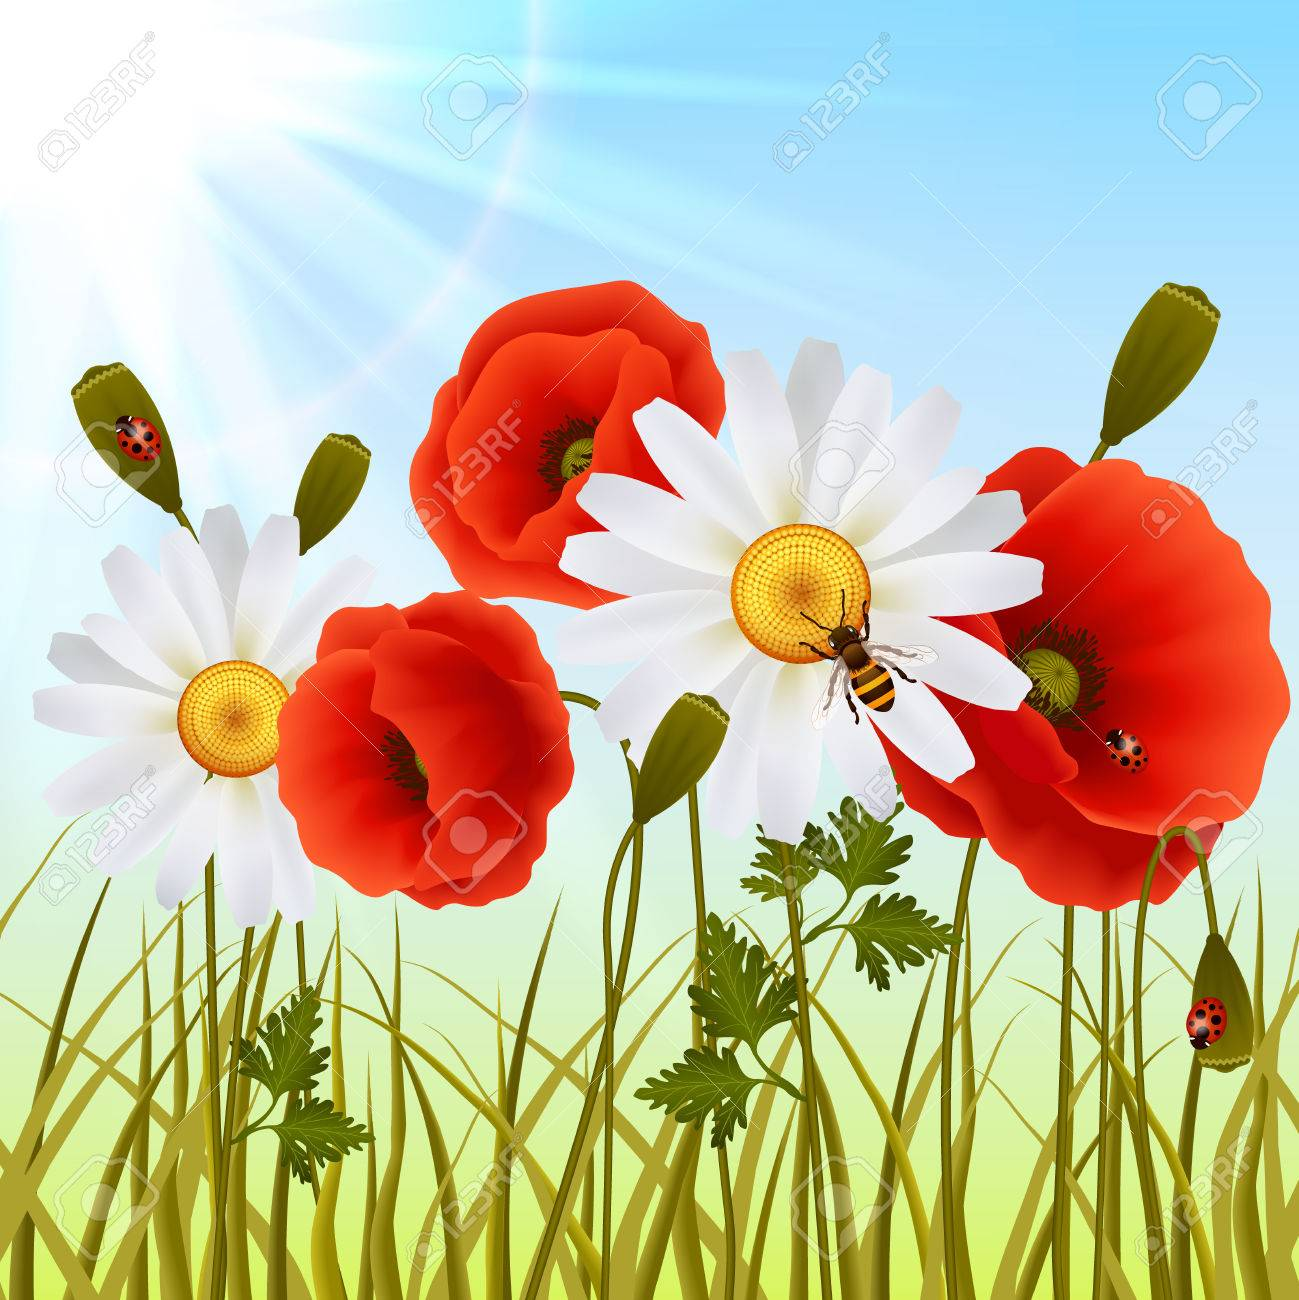 Red Romantic Poppy Flowers White Daisies And Grass With Ladybugs 1299x1300